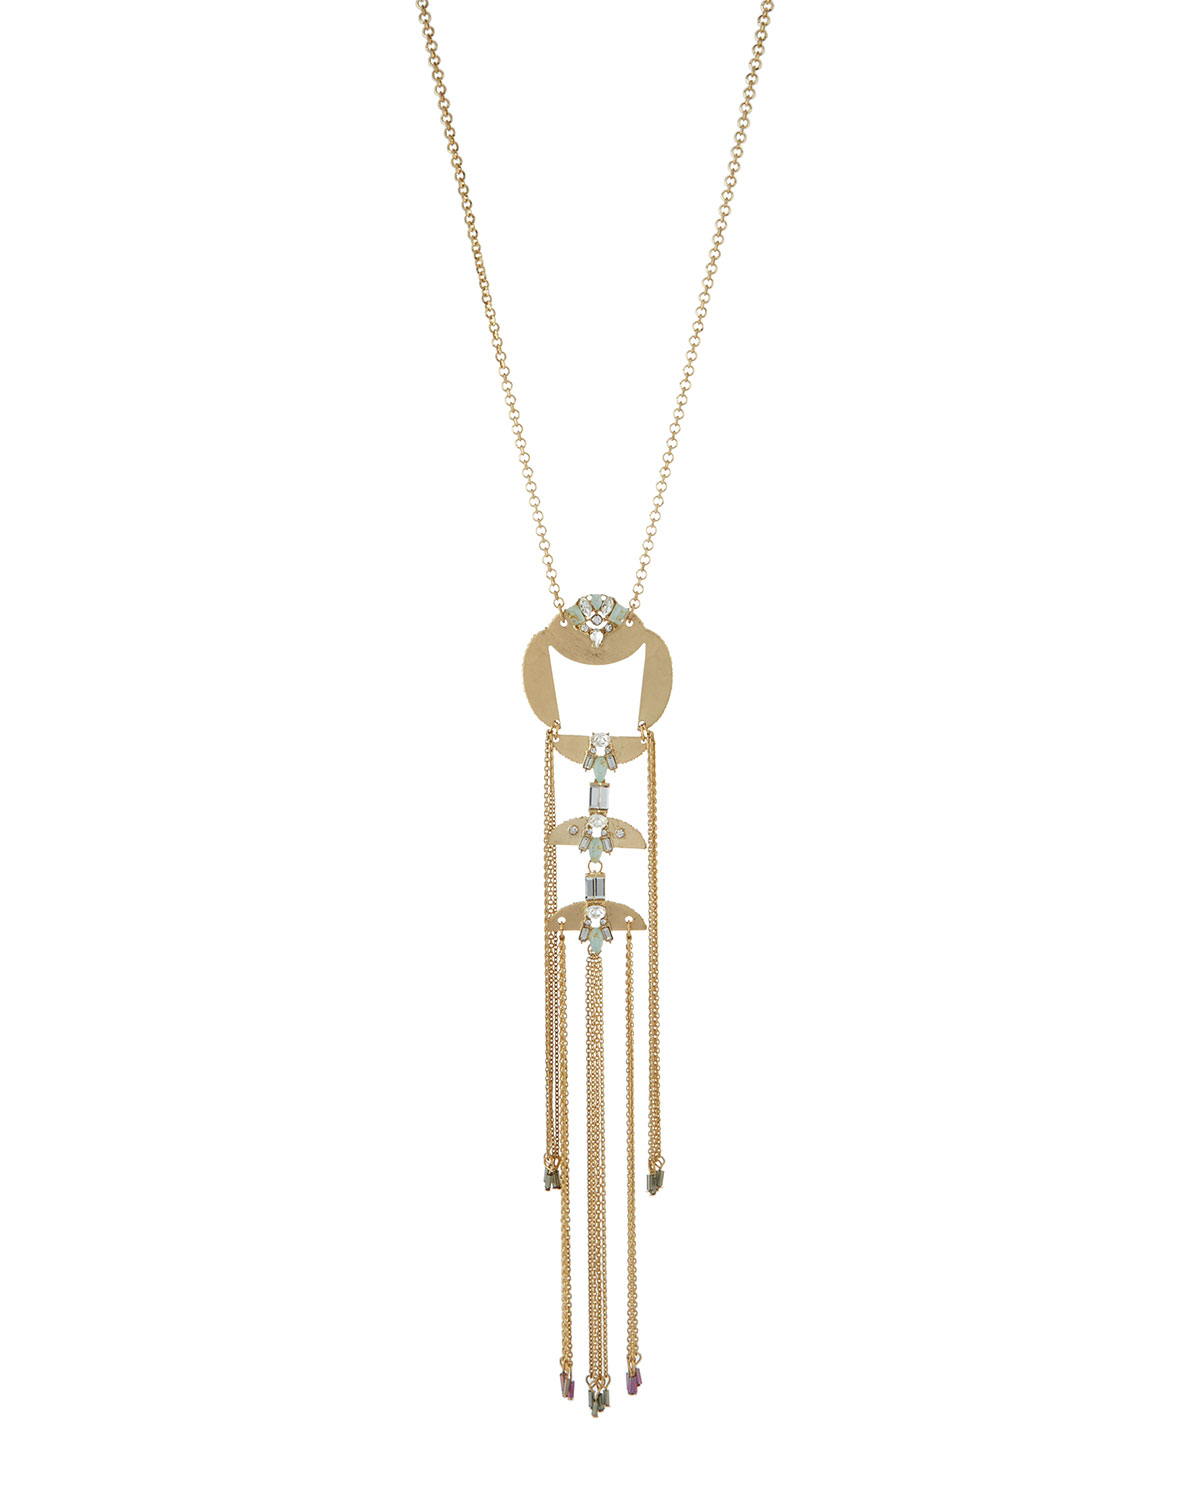 Lydell Nyc Crystal Tassel Pendant Necklace xZOUNibz